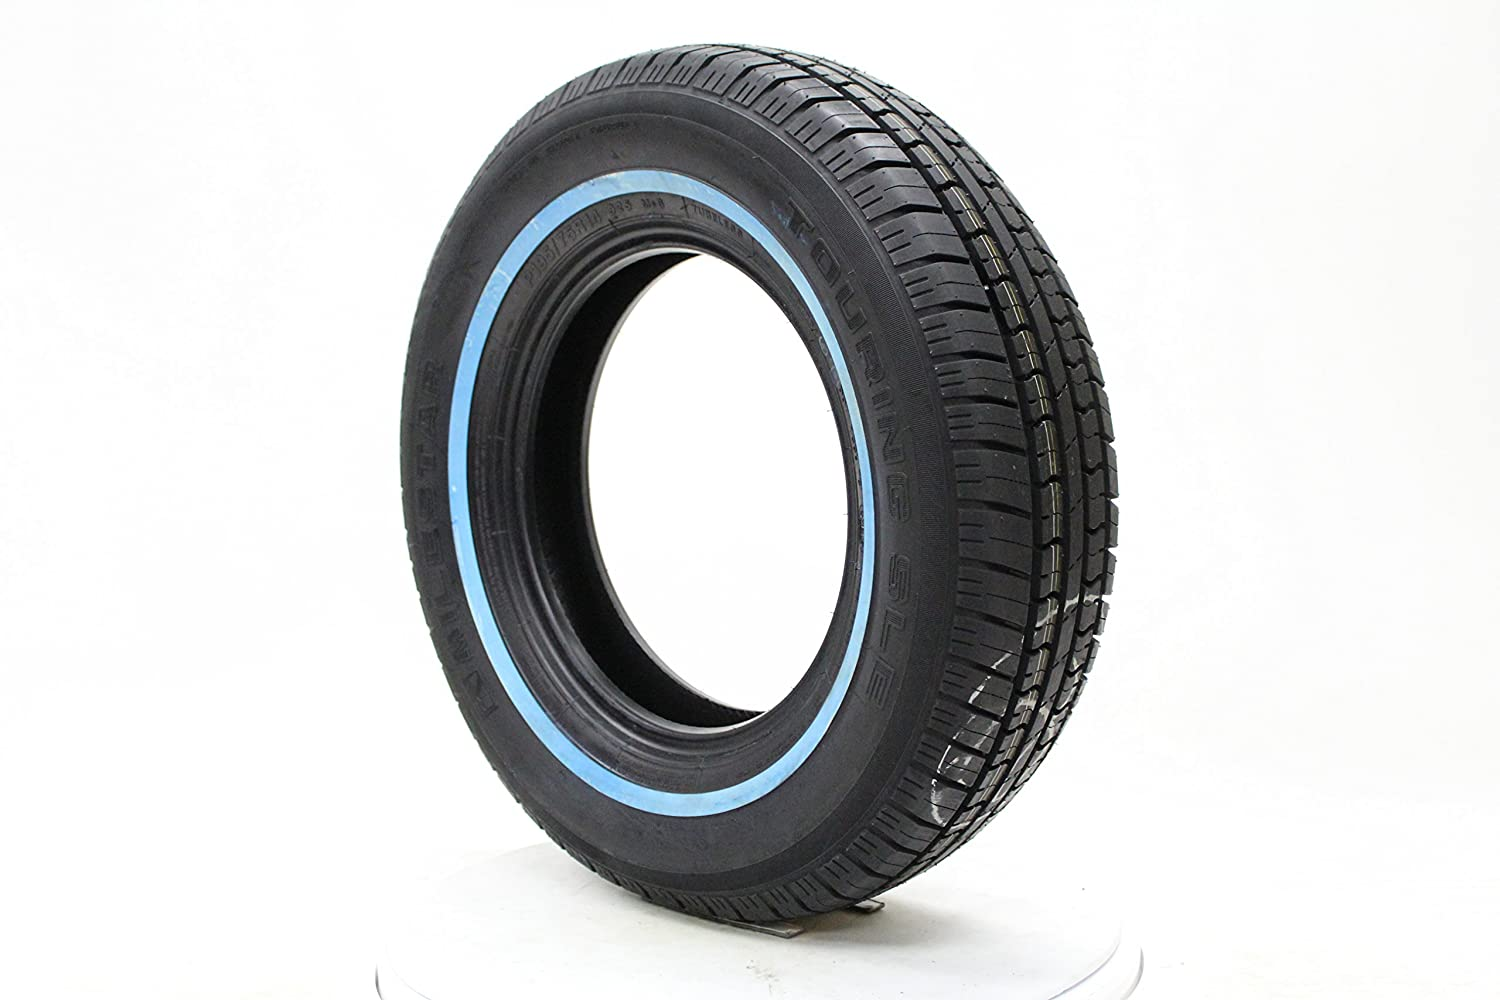 Radial Tire Drag Car For Sale, Amazon Com Milestar Ms775 All Season Radial Tire P155 80r13 Automotive, Radial Tire Drag Car For Sale